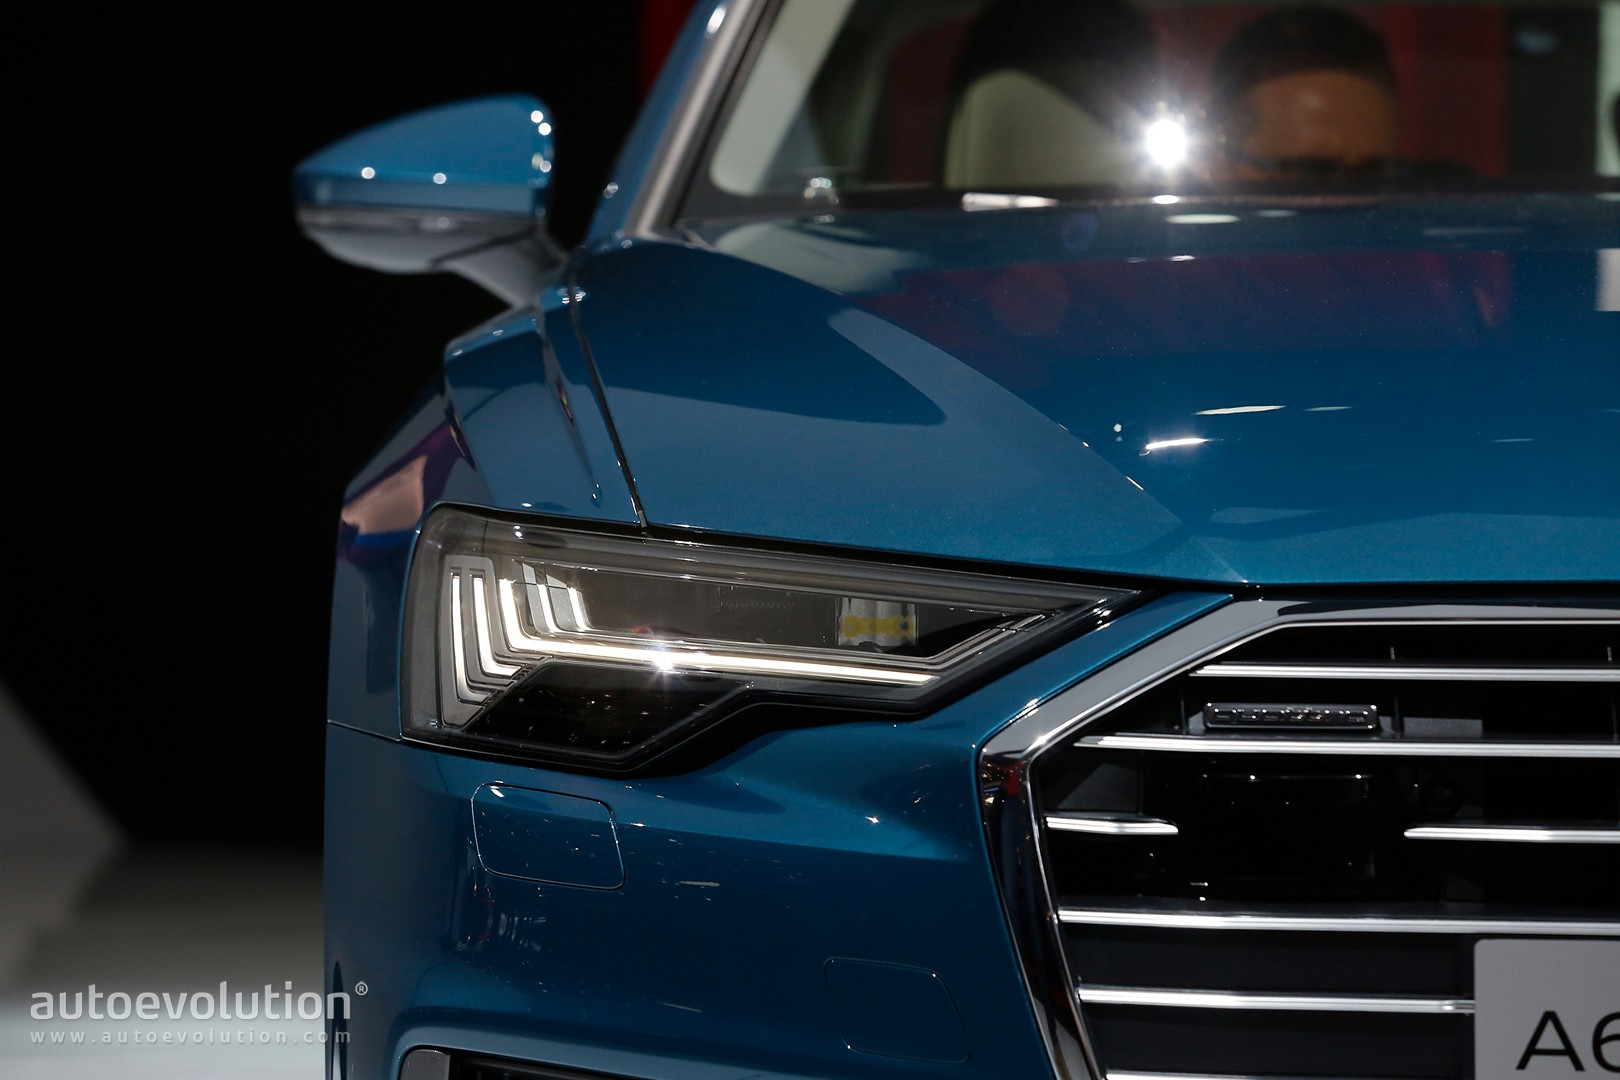 Audi Admits Engine Management Irregularities In A6 And A7 Models